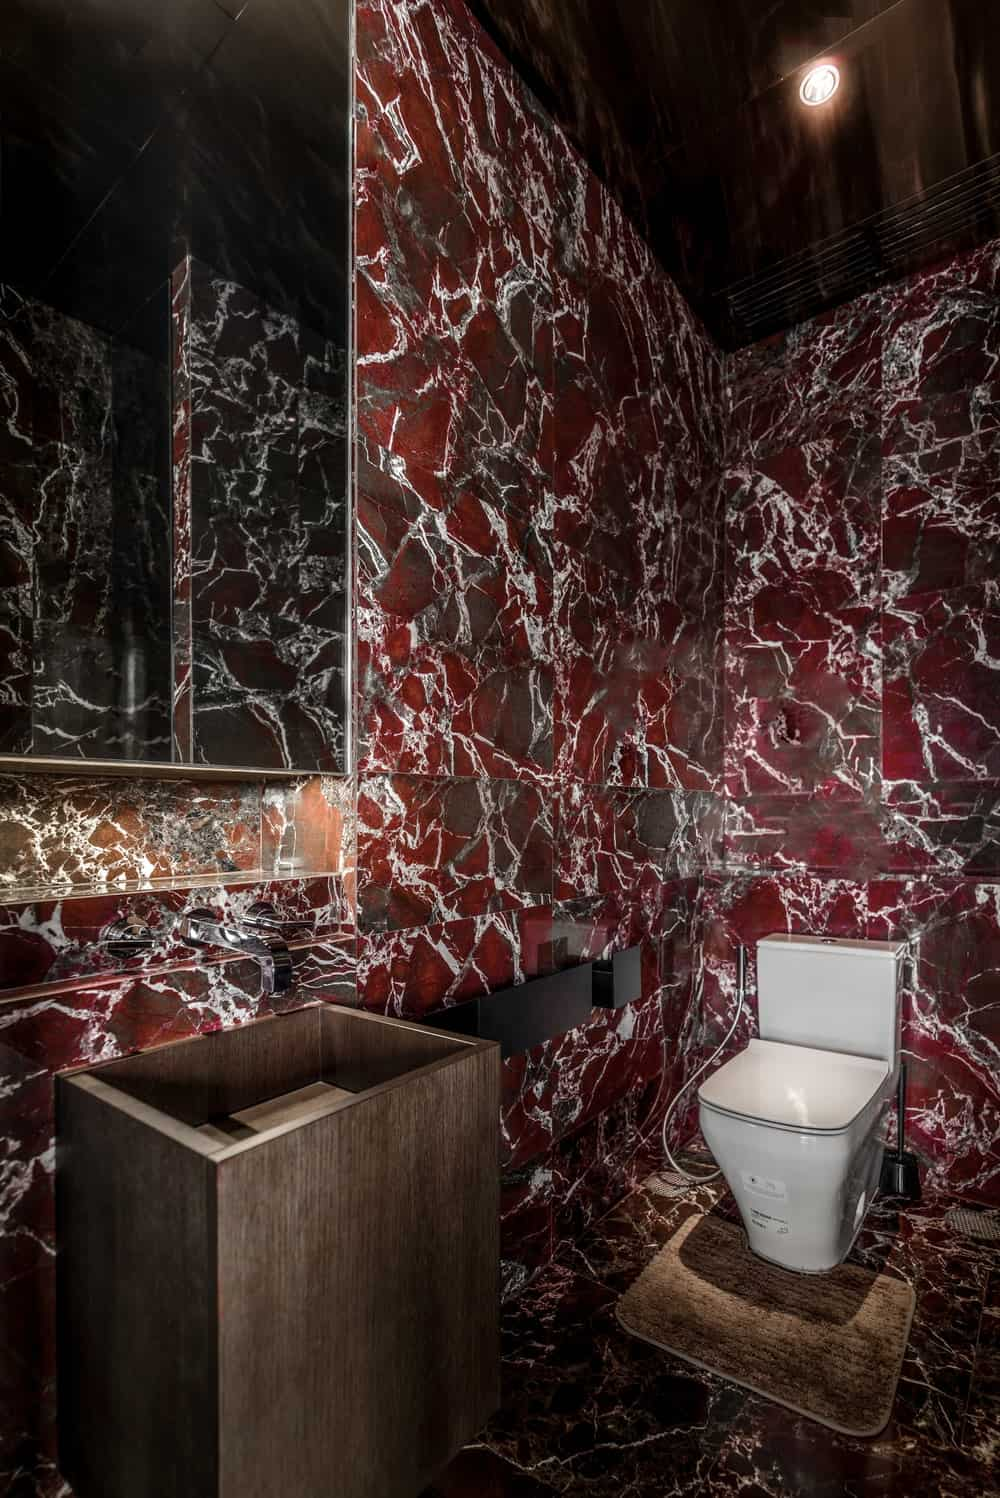 This other bathroom has mosaic red marble tiles that serves as background for the simple white toilet and simple brown sink.